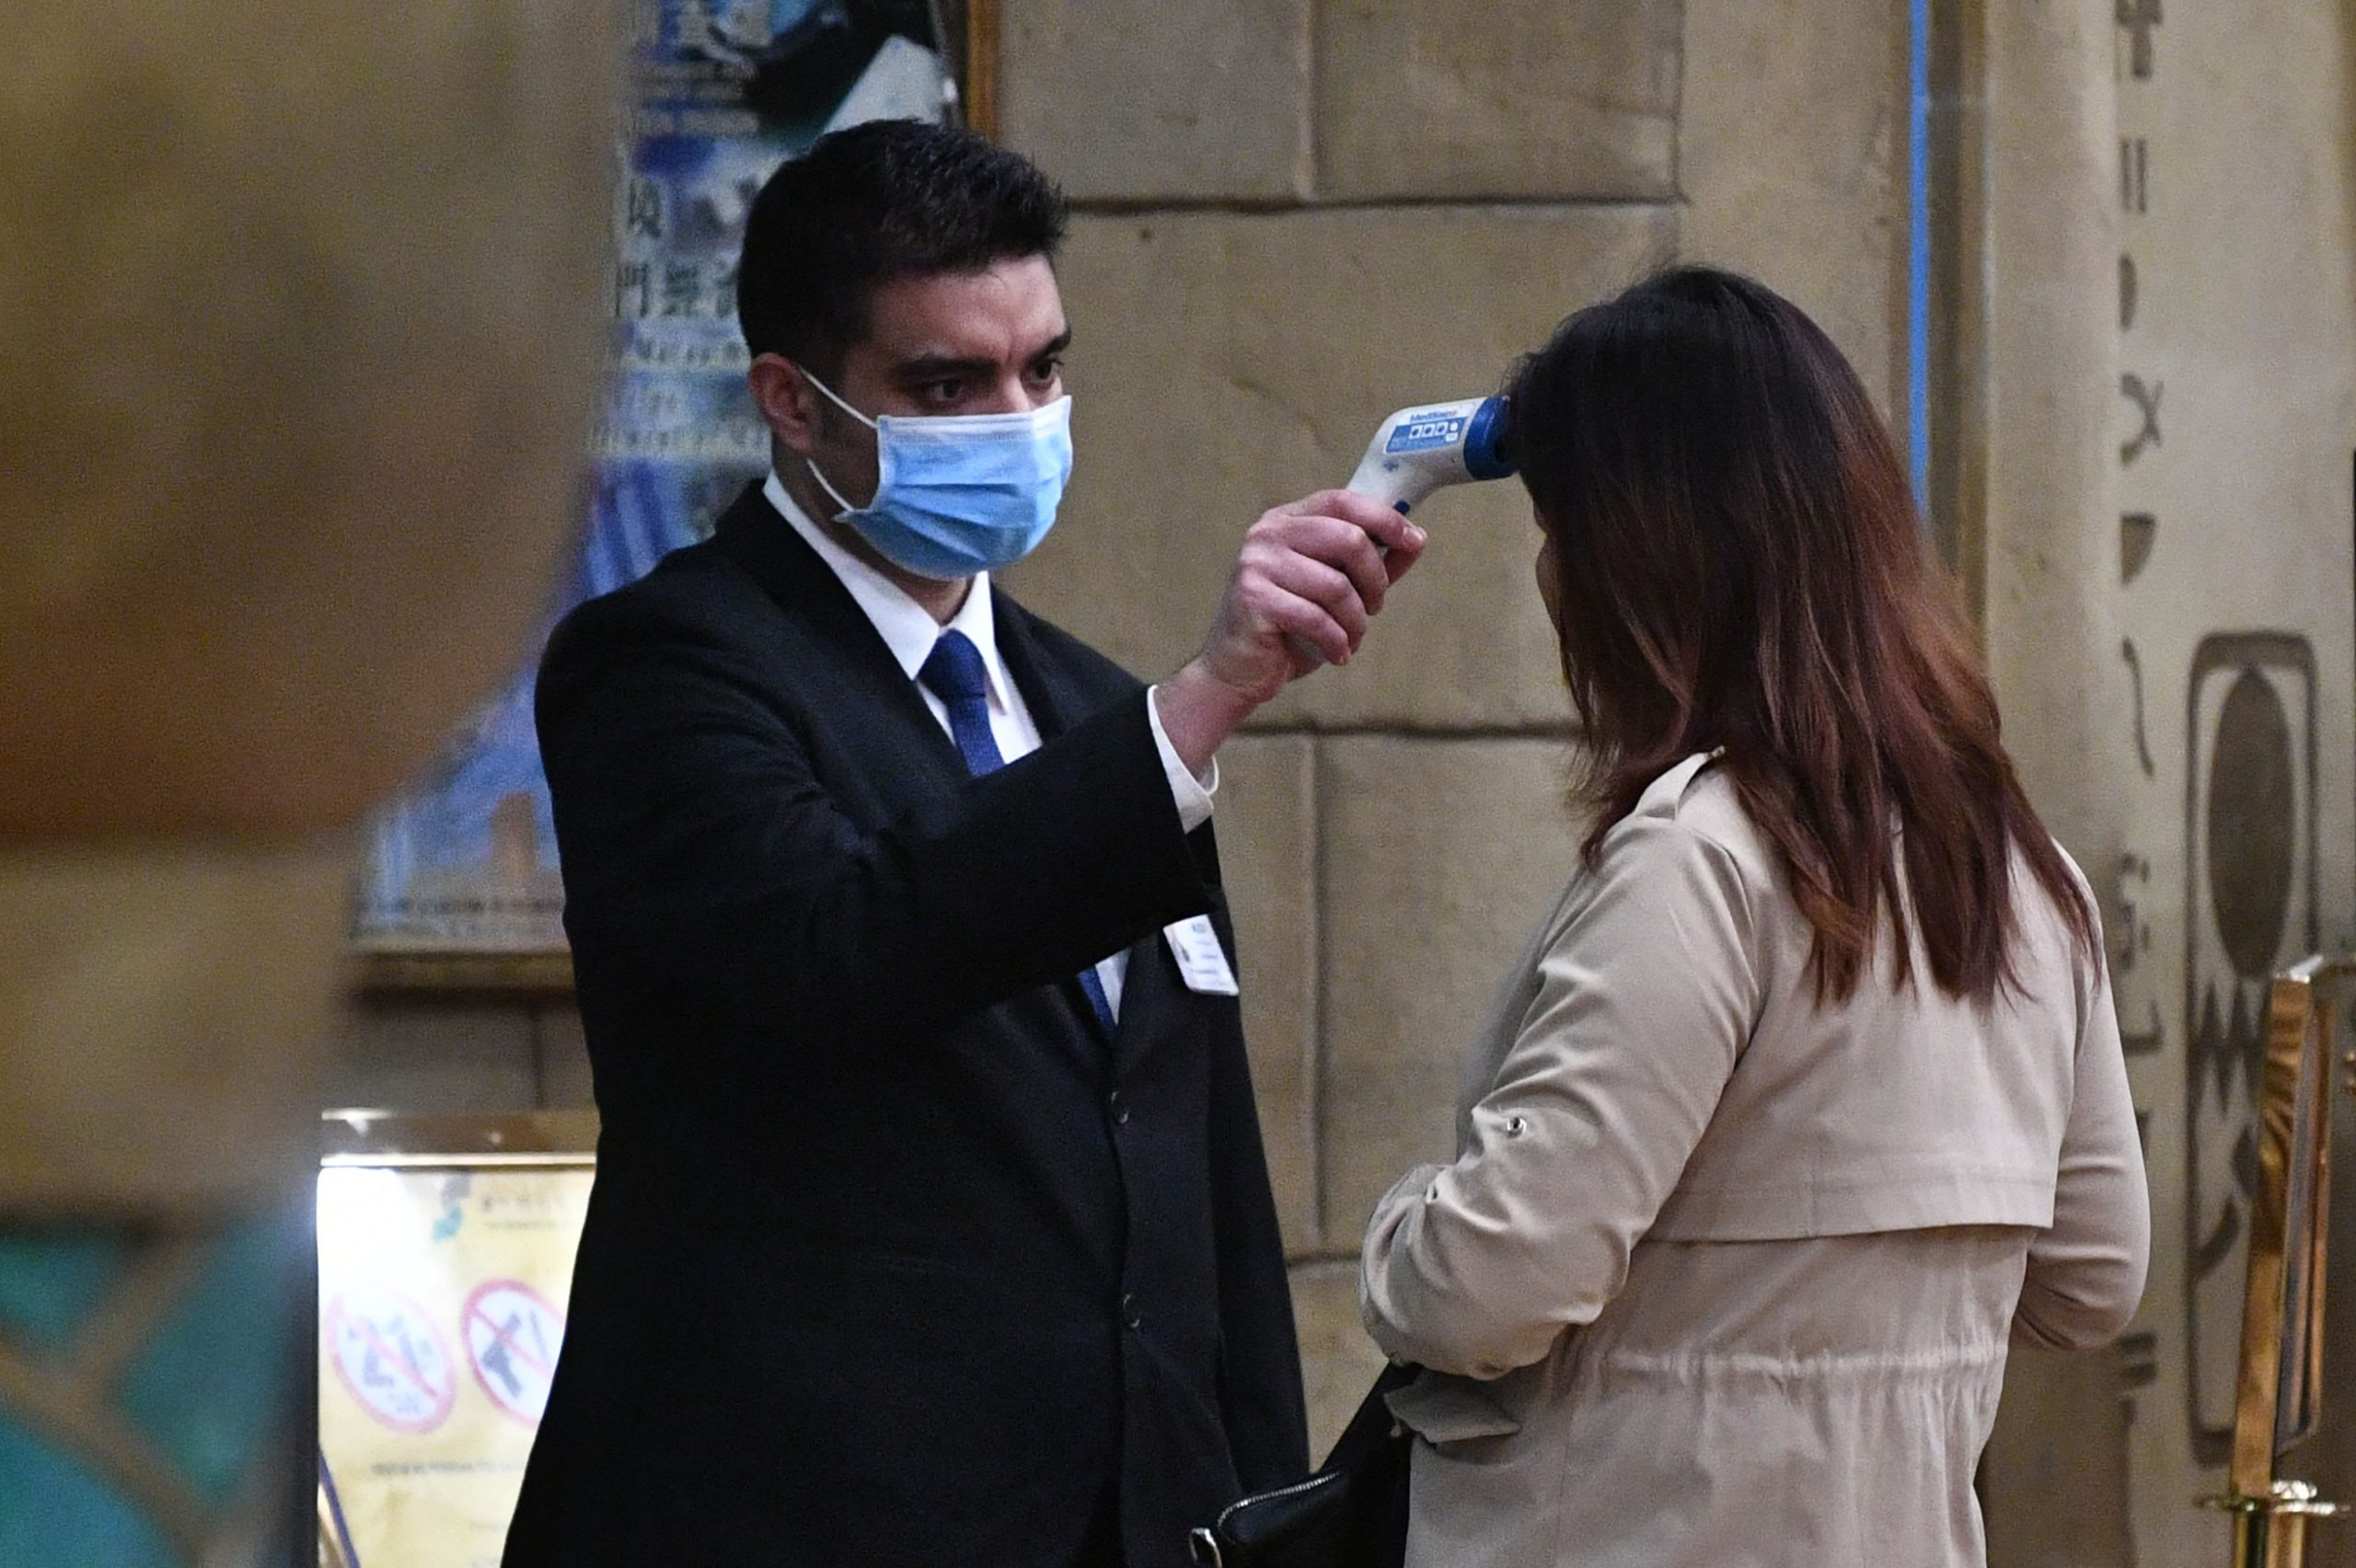 US futures down more than 200 points as coronavirus cases rise